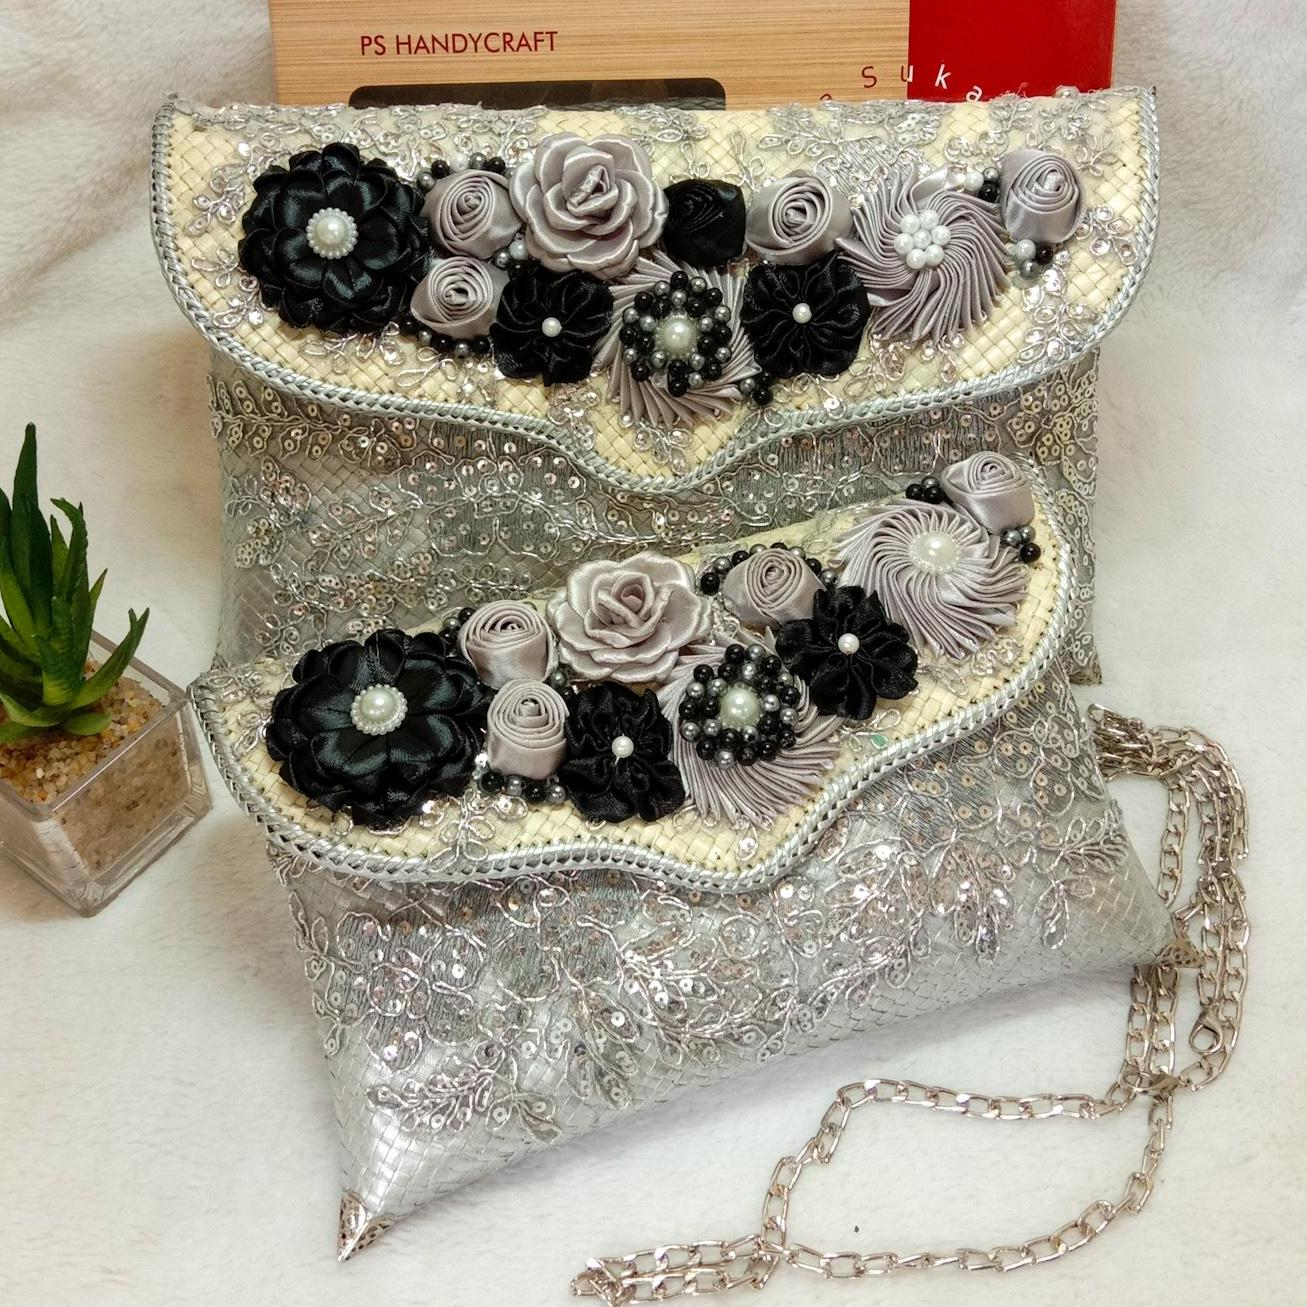 putra sukapura clutch party dompet anyaman pantas party eksklusif clutch pesta wanita silver premium